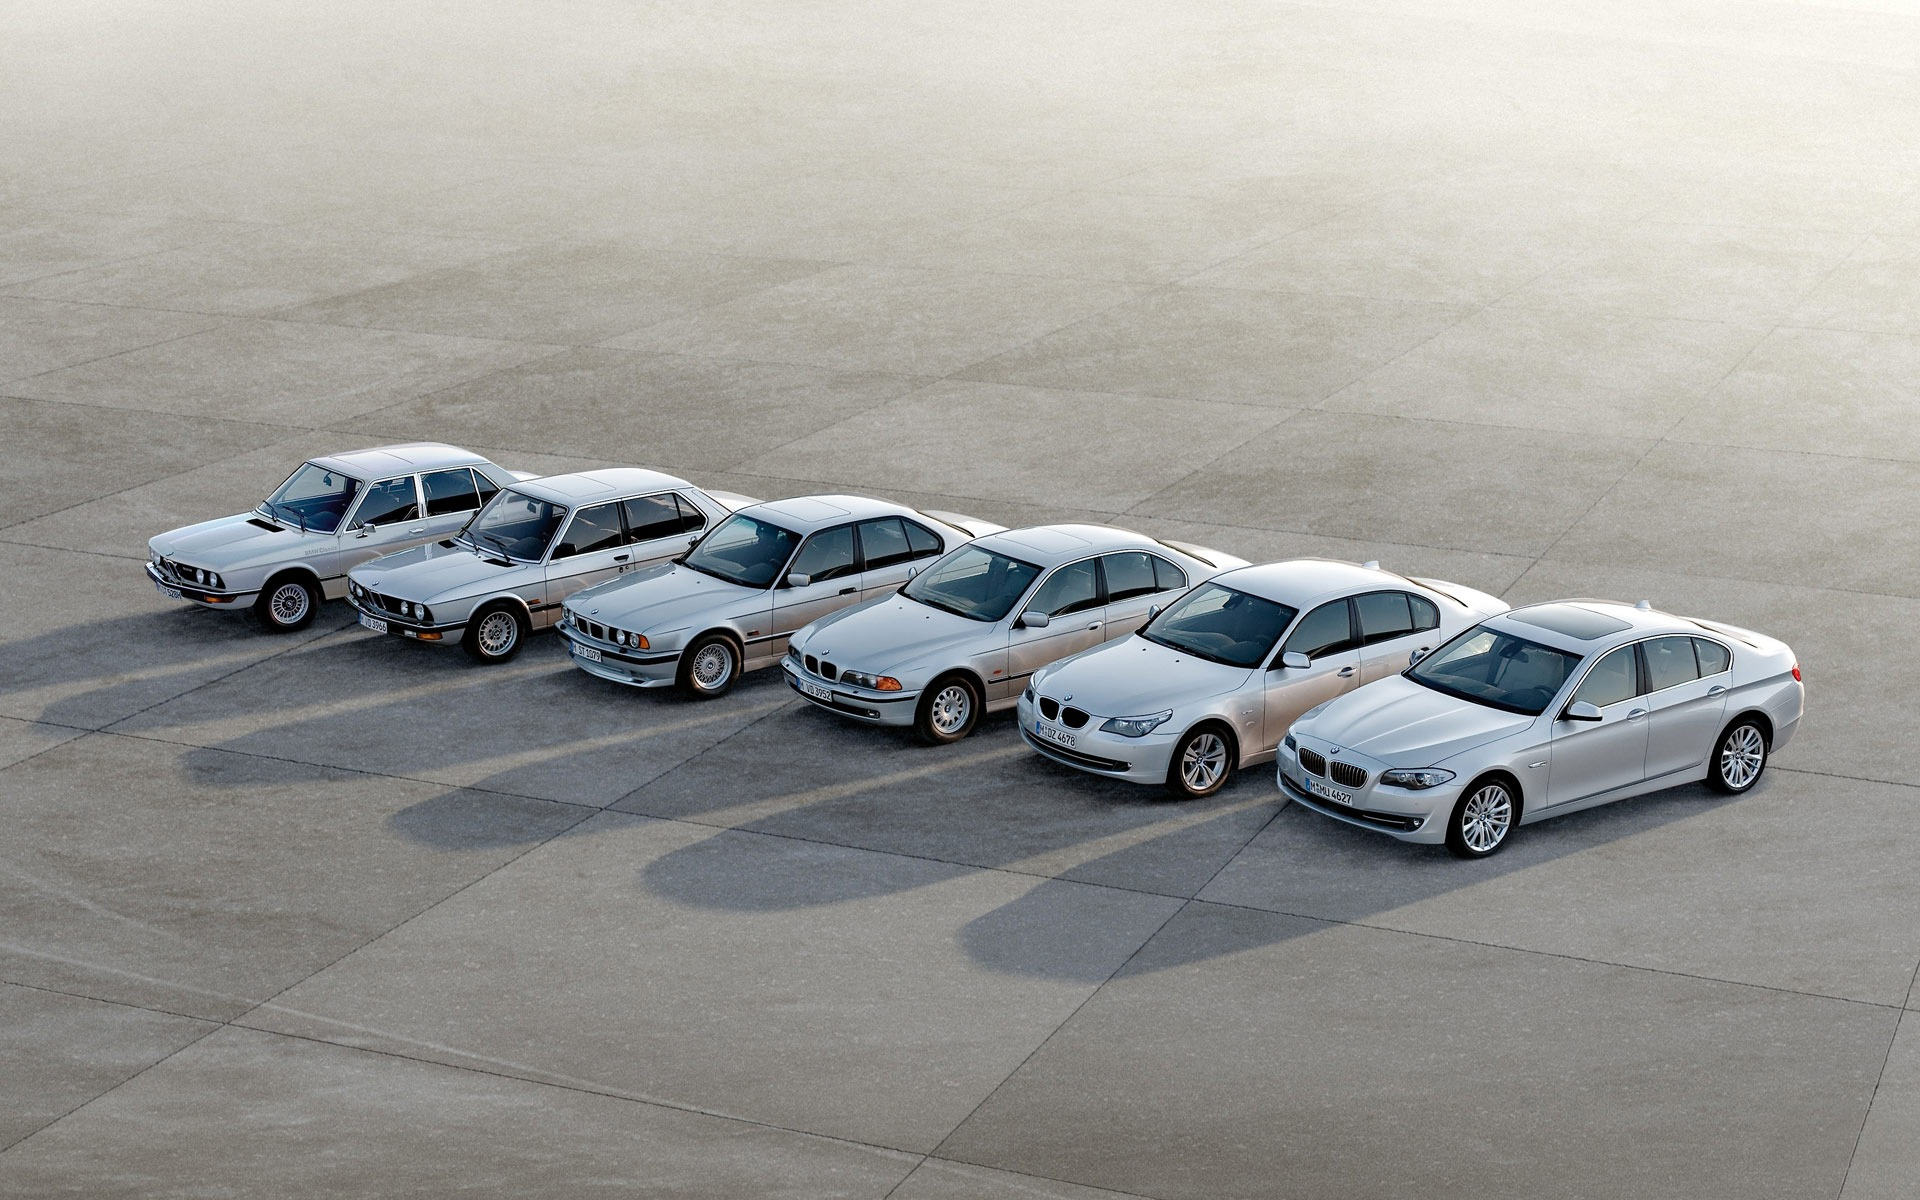 Bmw 5 Series Wallpaper Bmw Cars Wallpapers In Jpg Format For Free